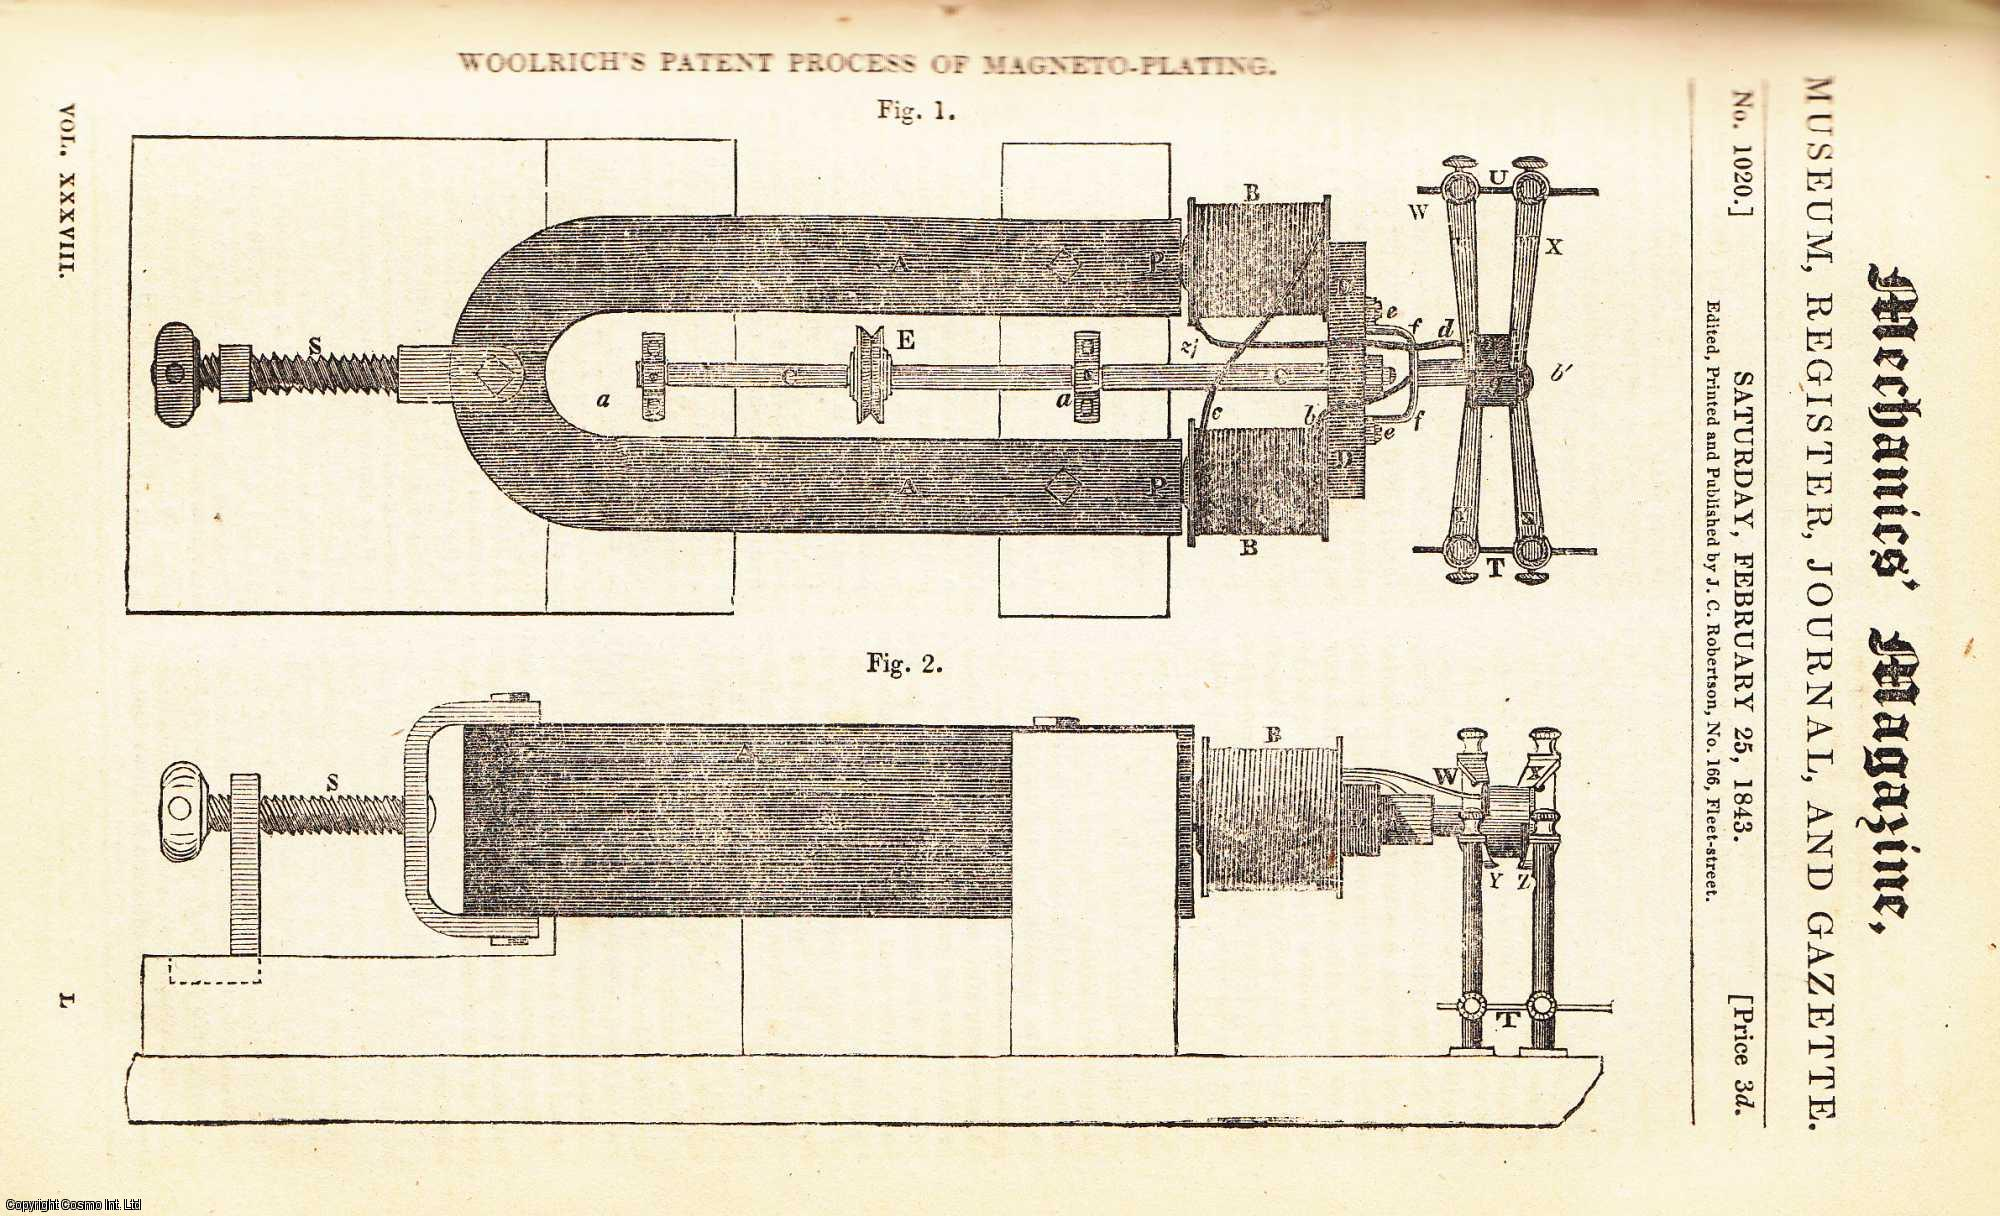 --- - Woolrich's Patent Process Of Magneto-Plating; Jeffery's Cement - Imitation Caoutchouc, ETC; Horse-Power Of High And Low Pressure Engines; Scientific Necrology For 1842; The Prince Albert Steamer, etc. Mechanics Magazine, Museum, Register, Journal and Gazette. Issue No. 1020. A complete rare weekly issue of the Mechanics' Magazine, 1843.